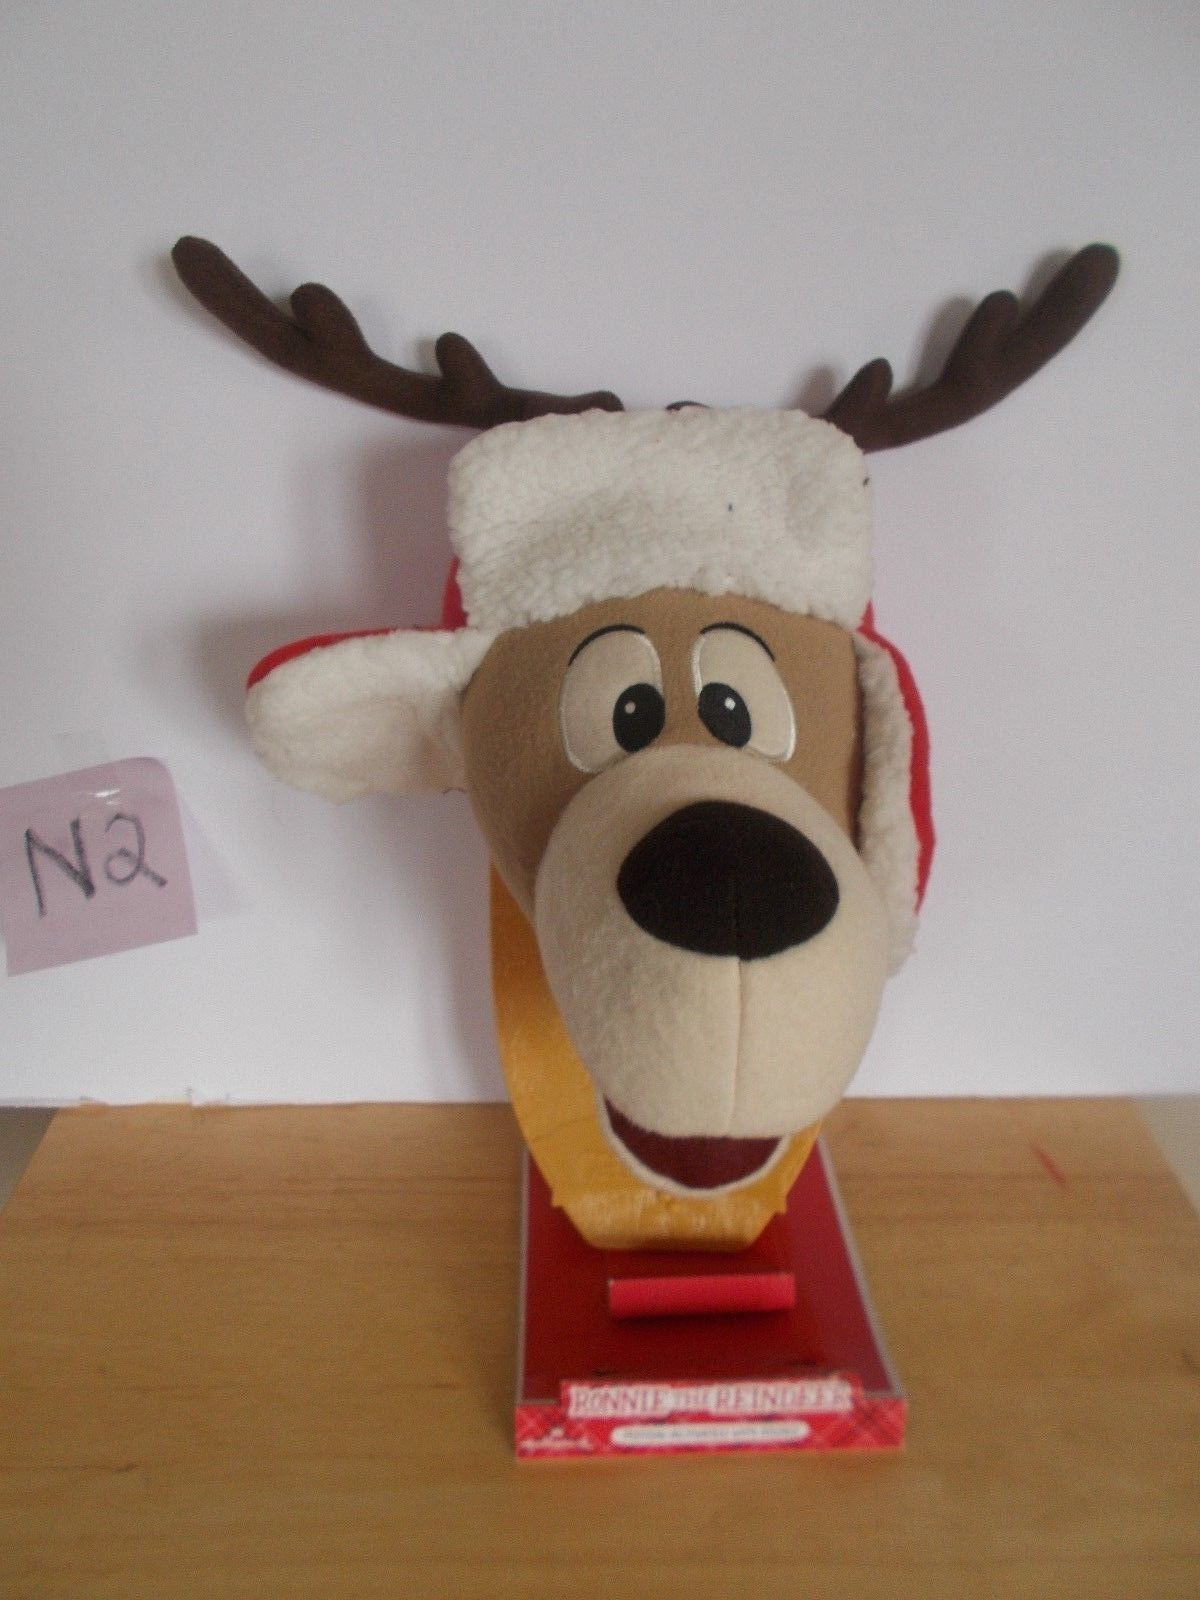 Primary image for Hallmark Ronnie the REindeer Motion-Activated with Sound